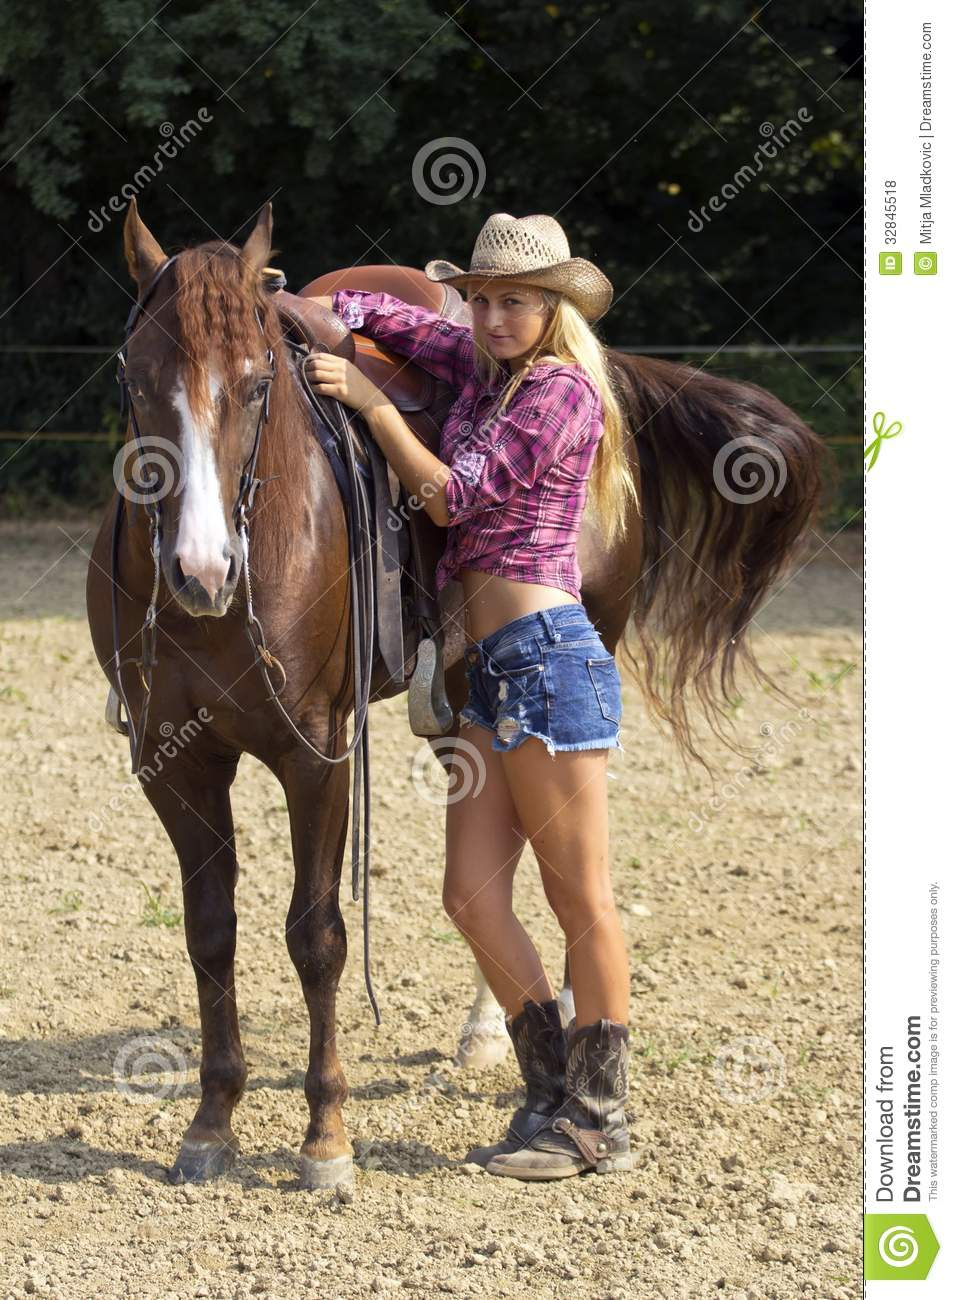 Blond Cowgirl Royalty Free Stock Photos Image 32845518